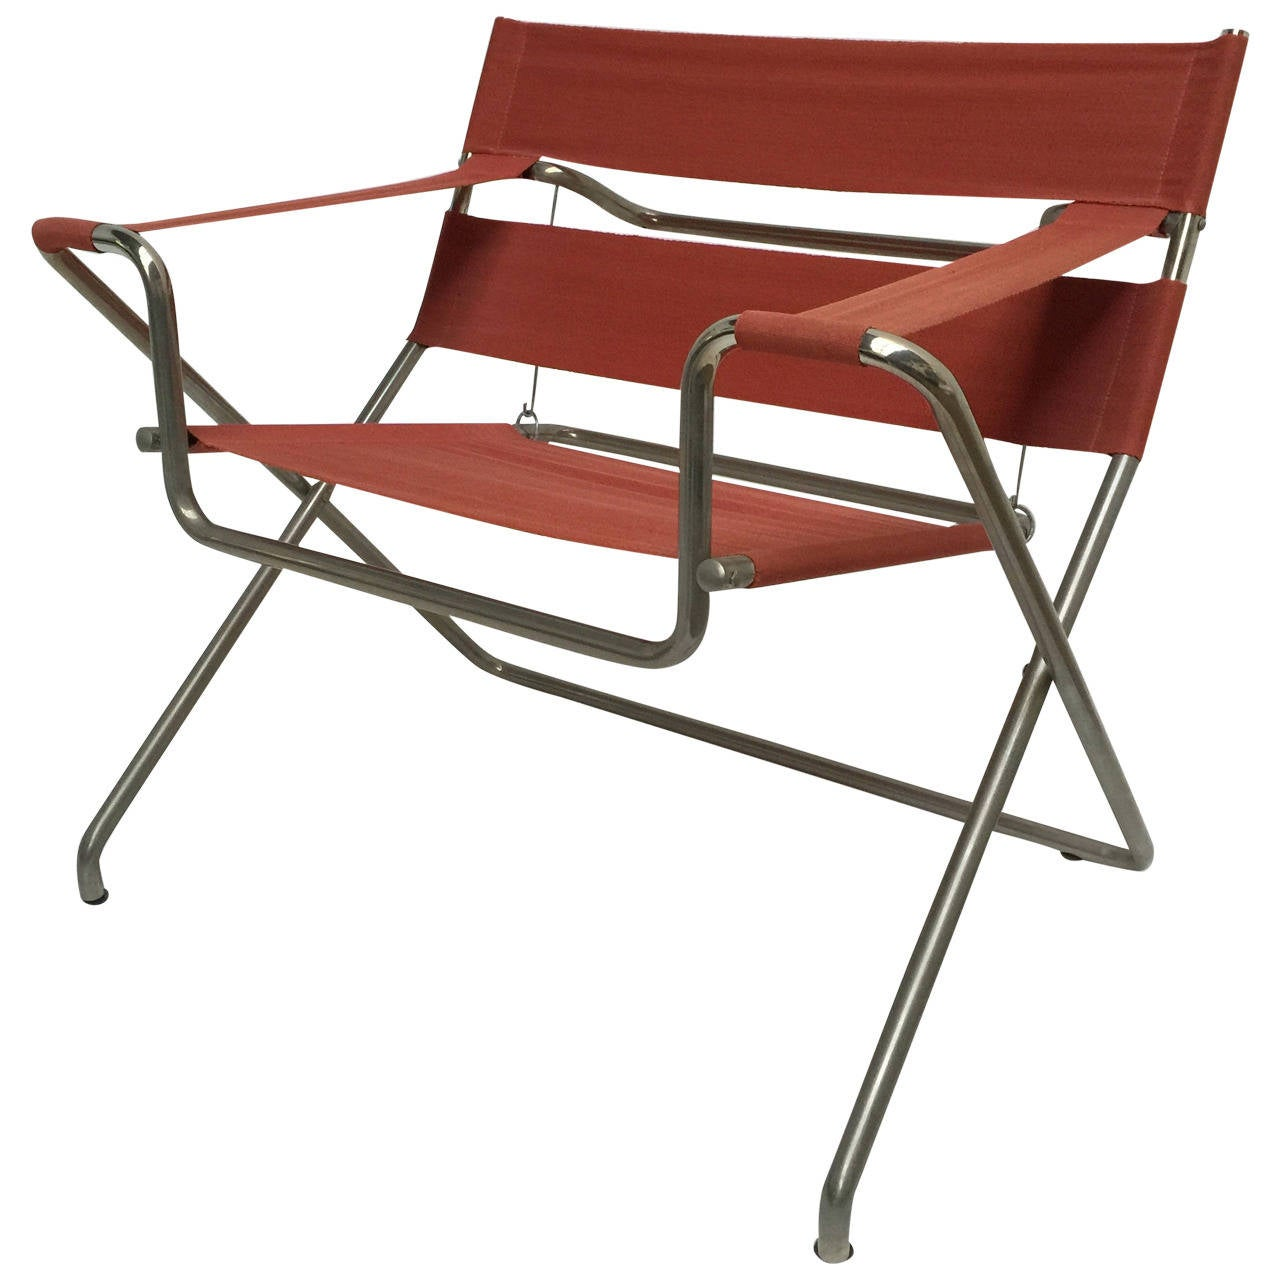 marcel breuer chair retro aluminum chairs d4 foldable easy purchased in 1968